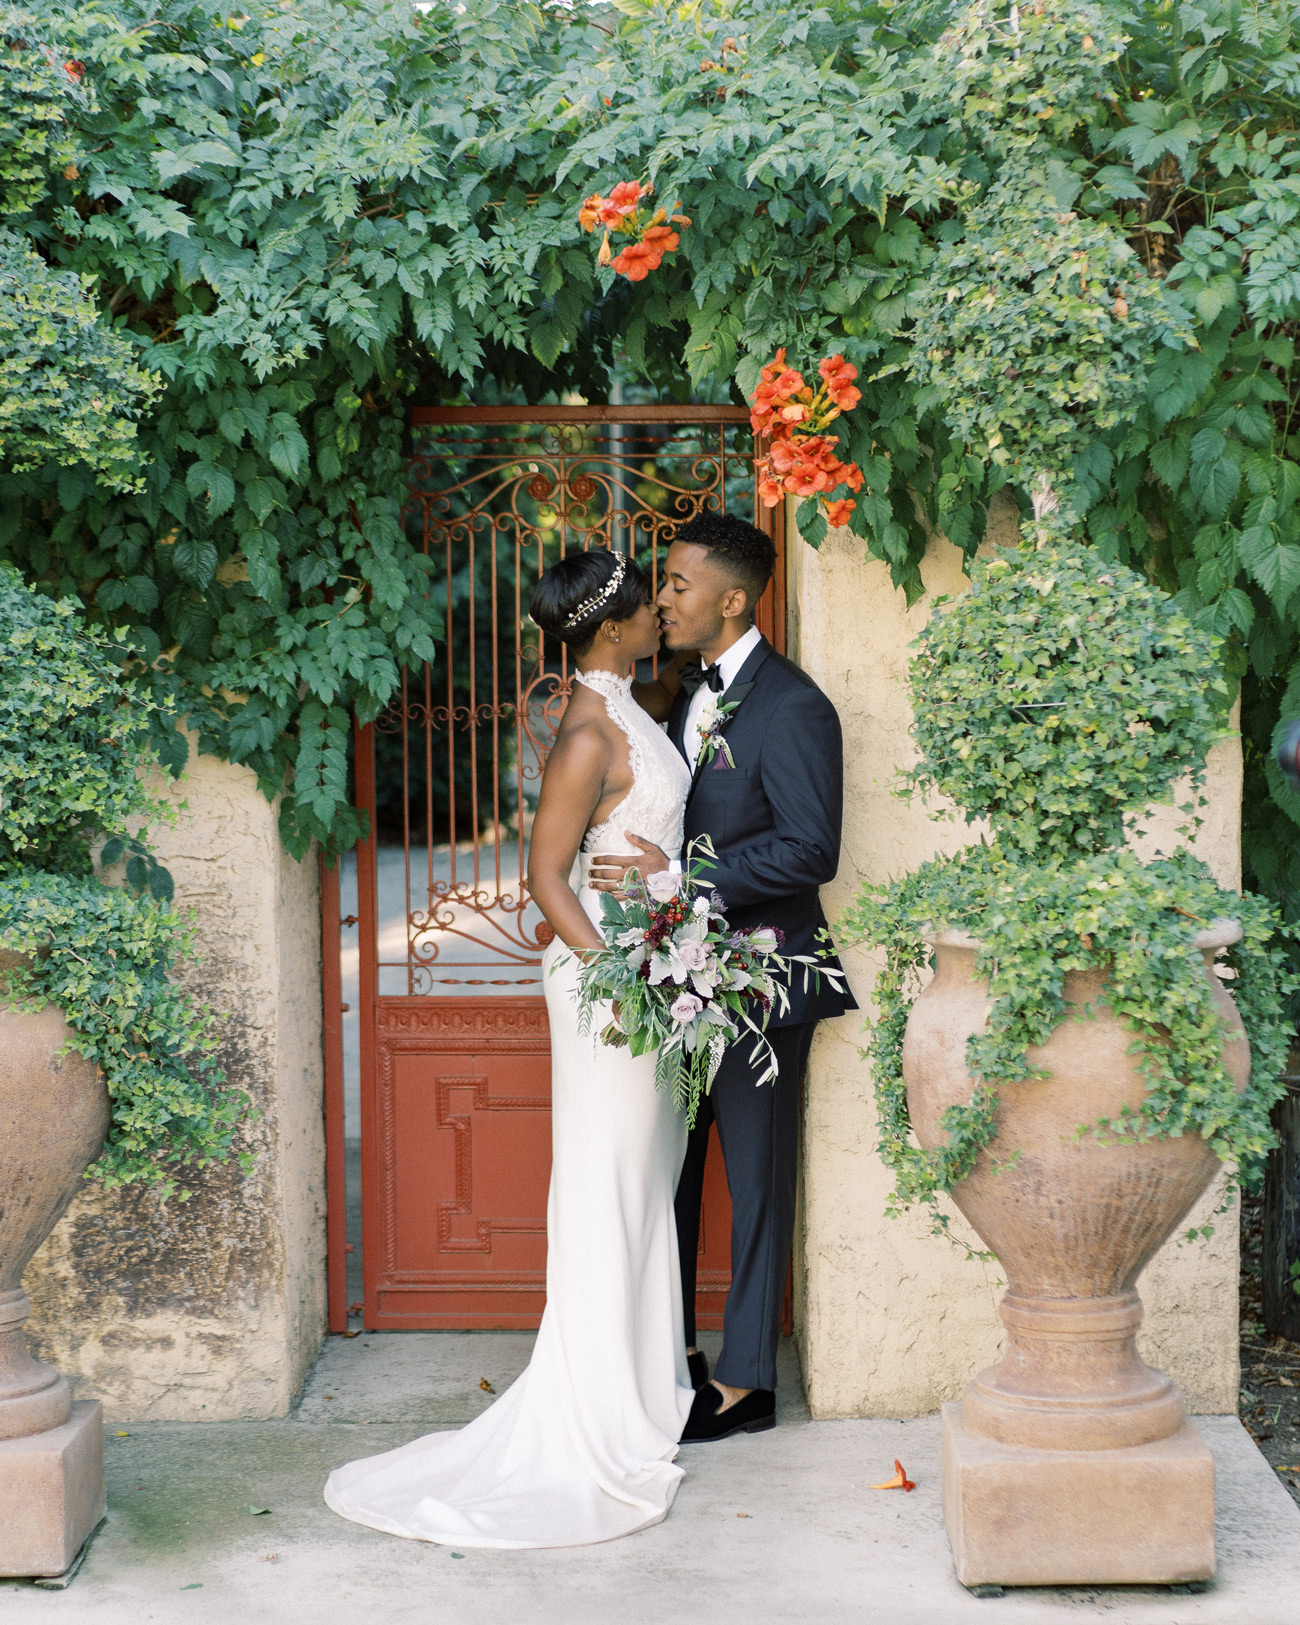 Chaya and Braxton in front of rustic garden door